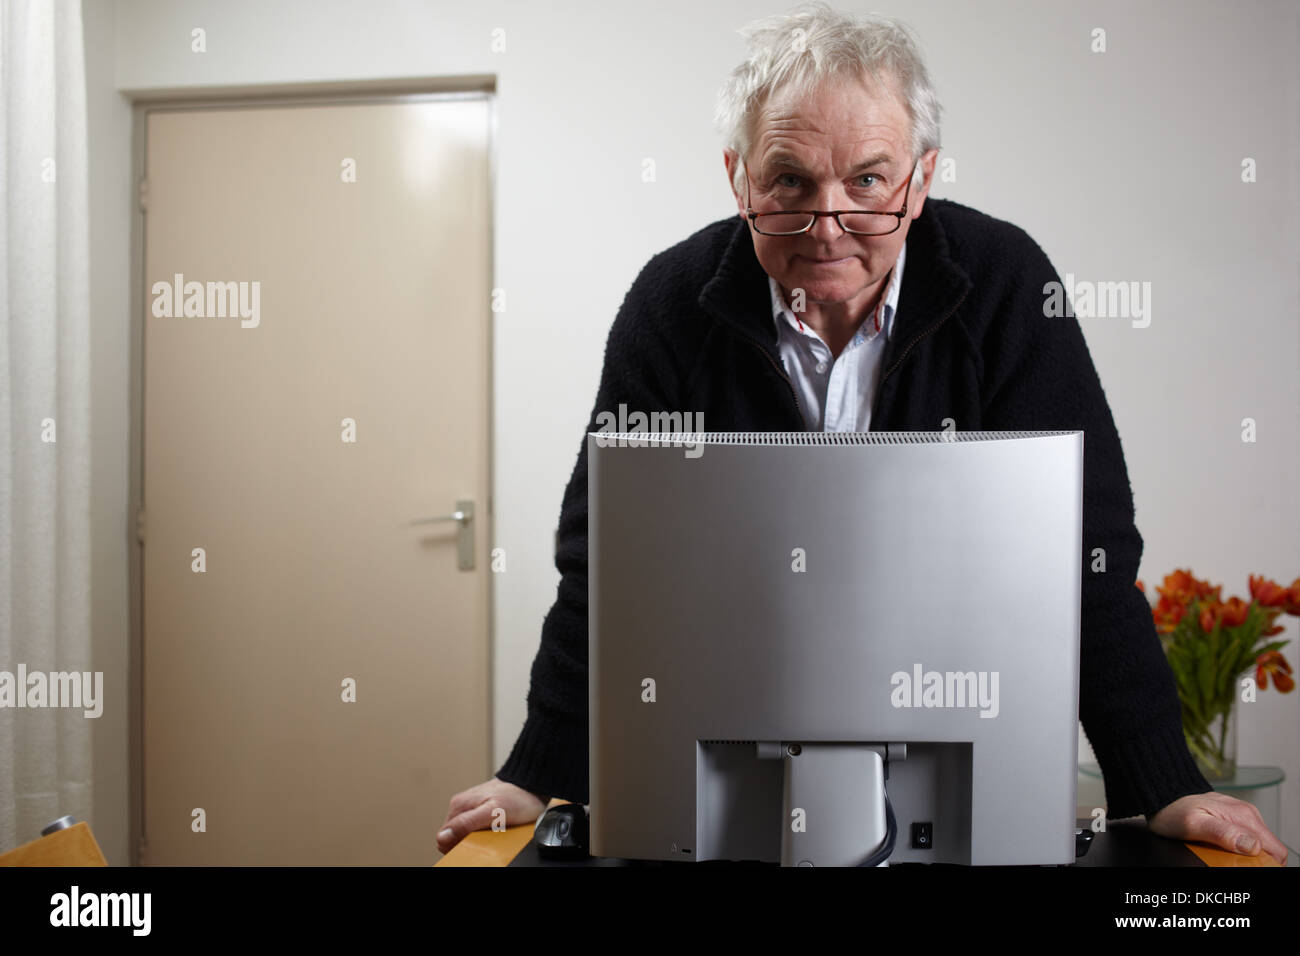 Senior man at home standing in front of personal comuter - Stock Image